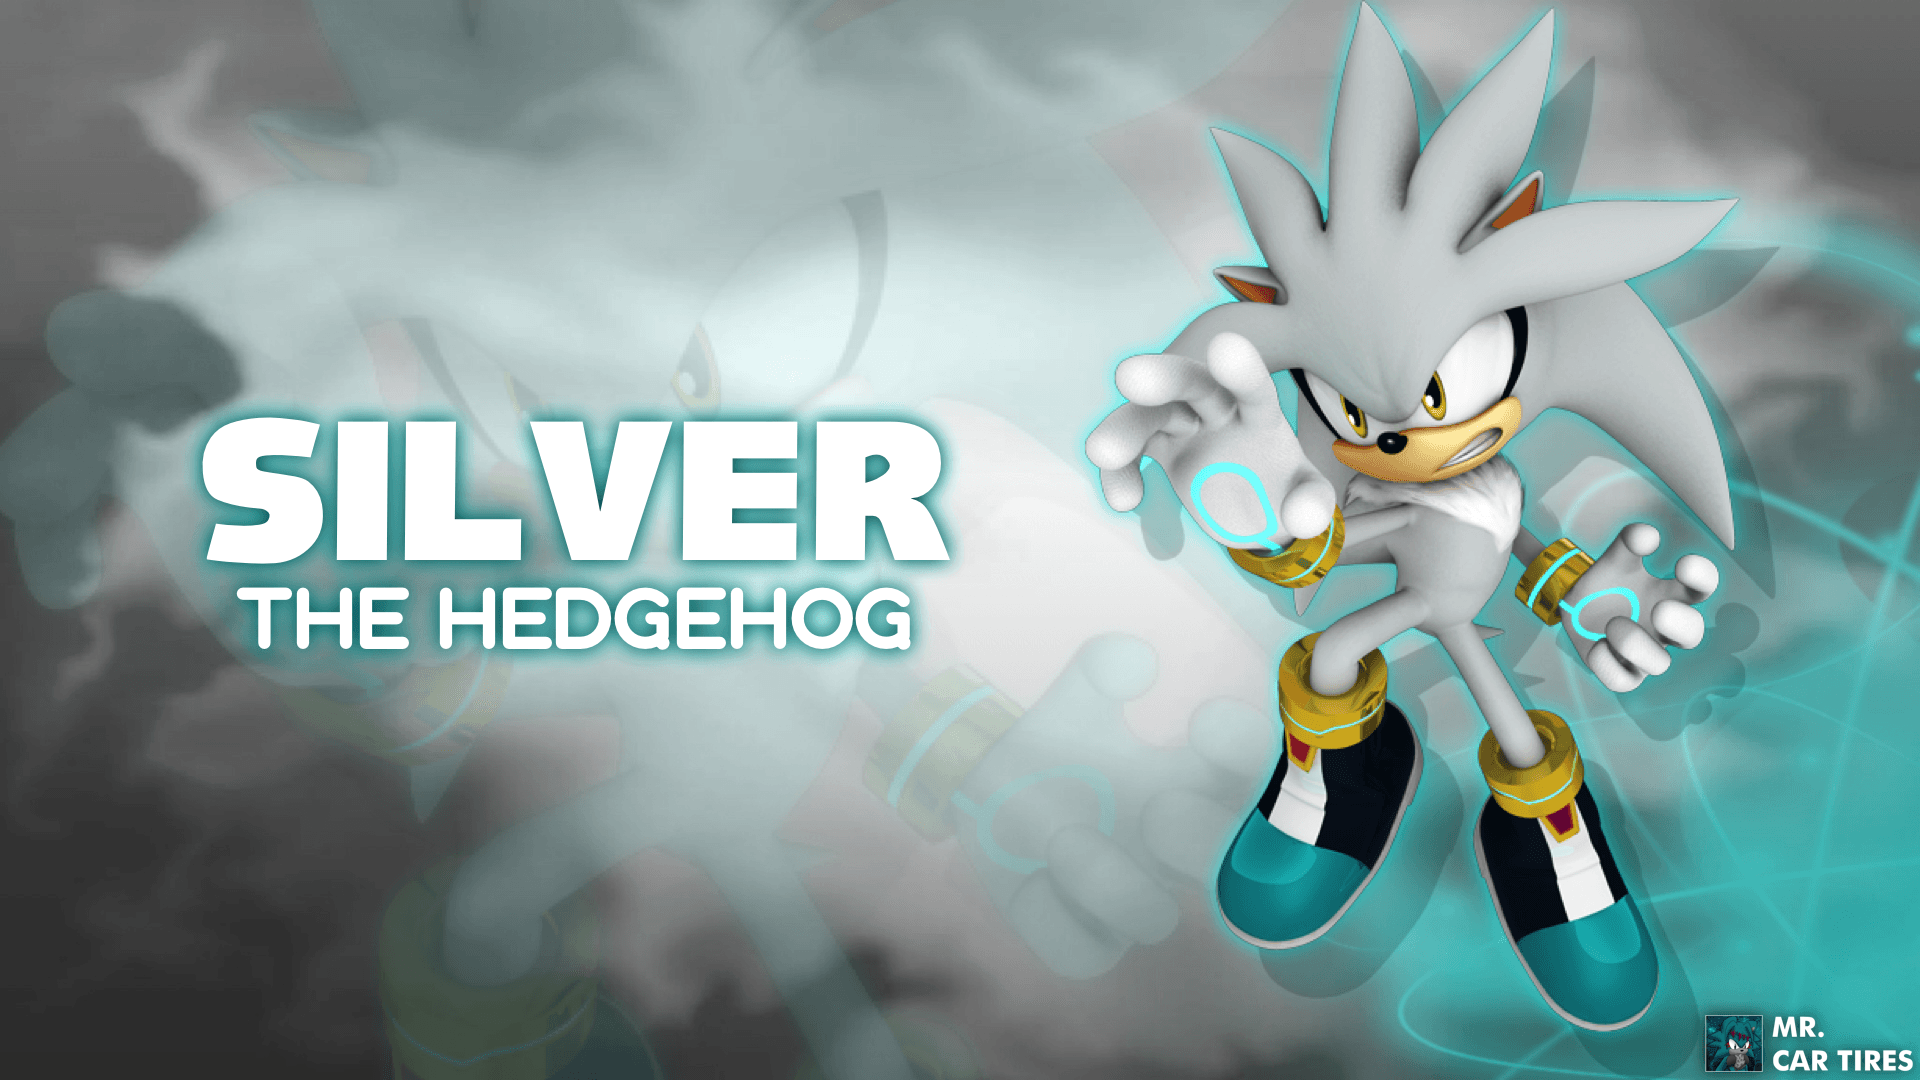 Silver The Hedgehog Wallpaper HD